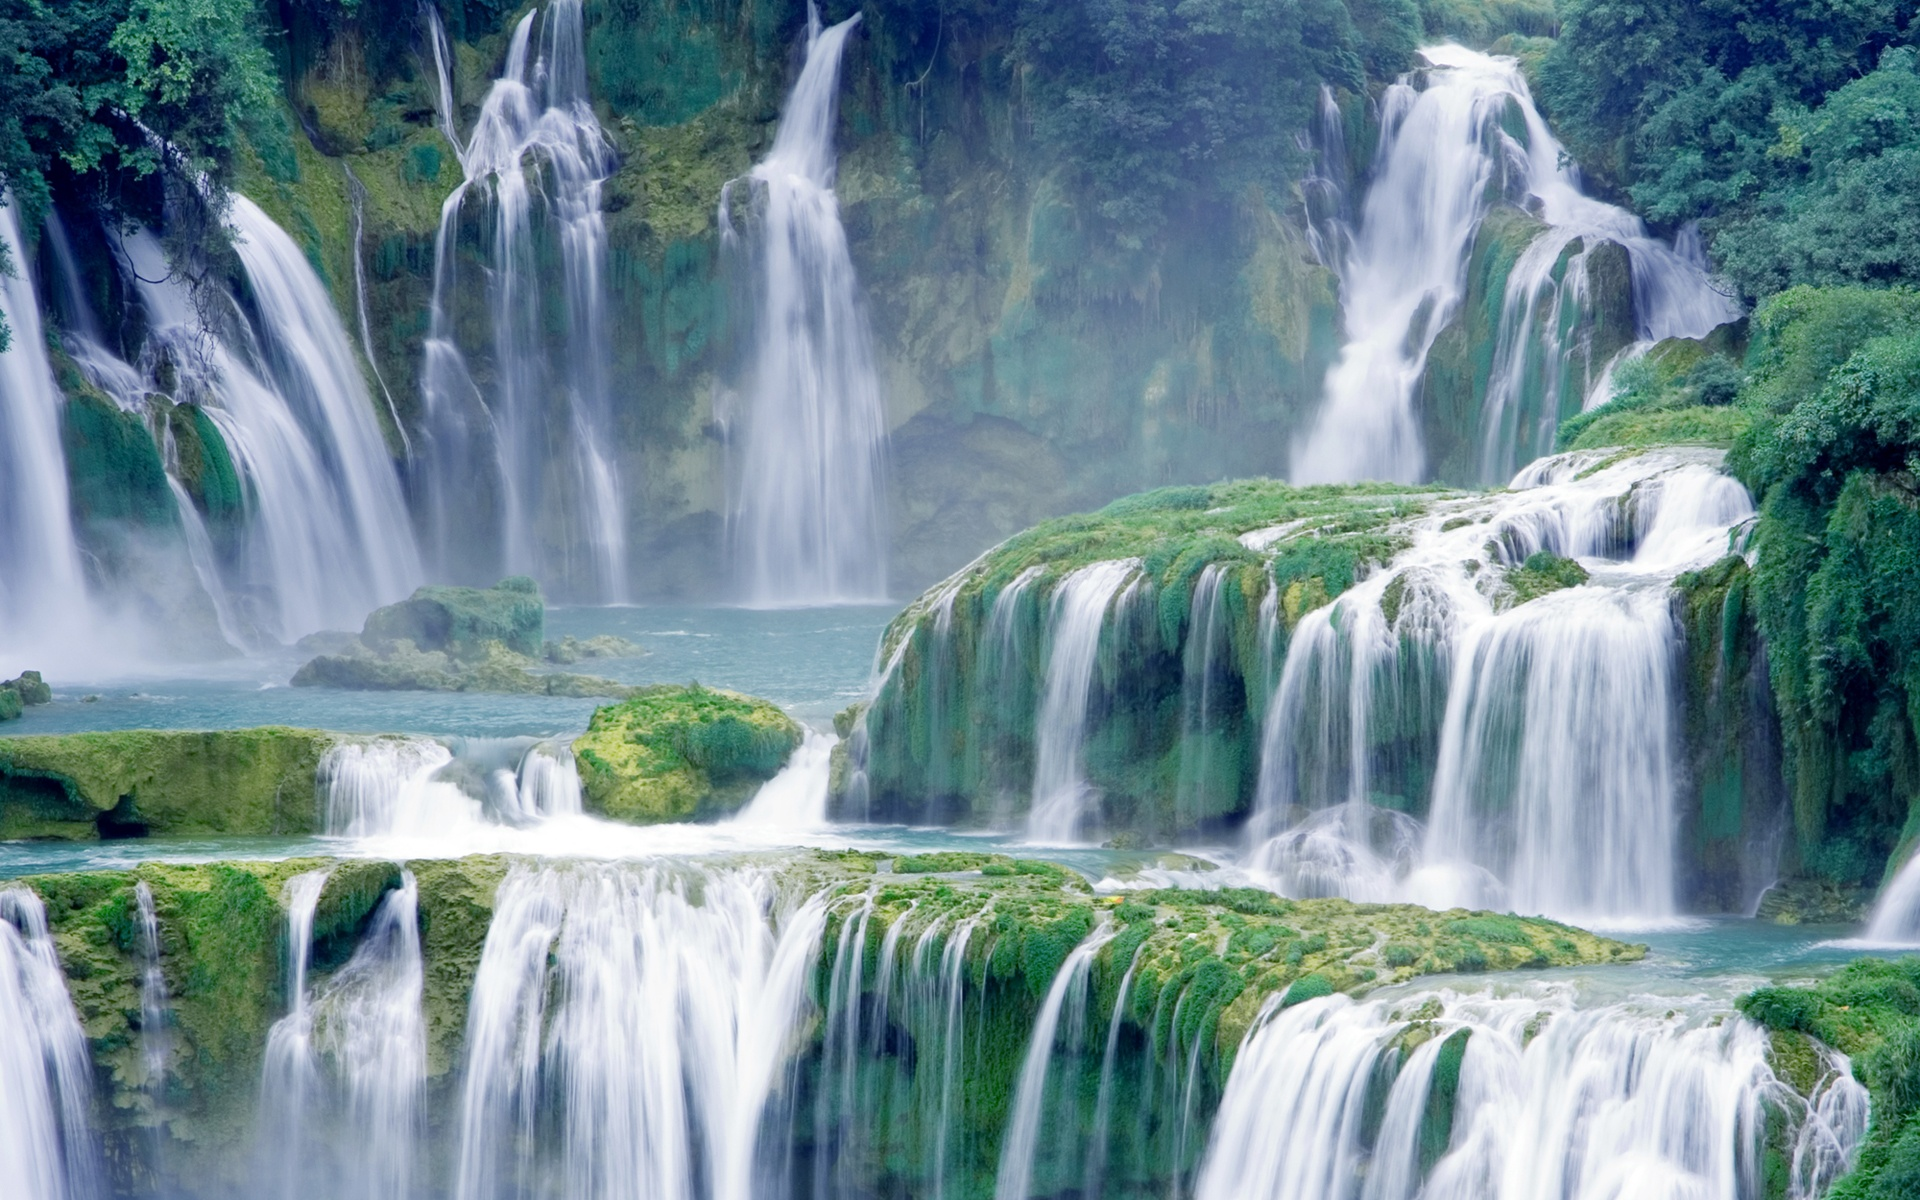 Waterfall Wallpapers 19641 1920x1200 px HDWallSourcecom